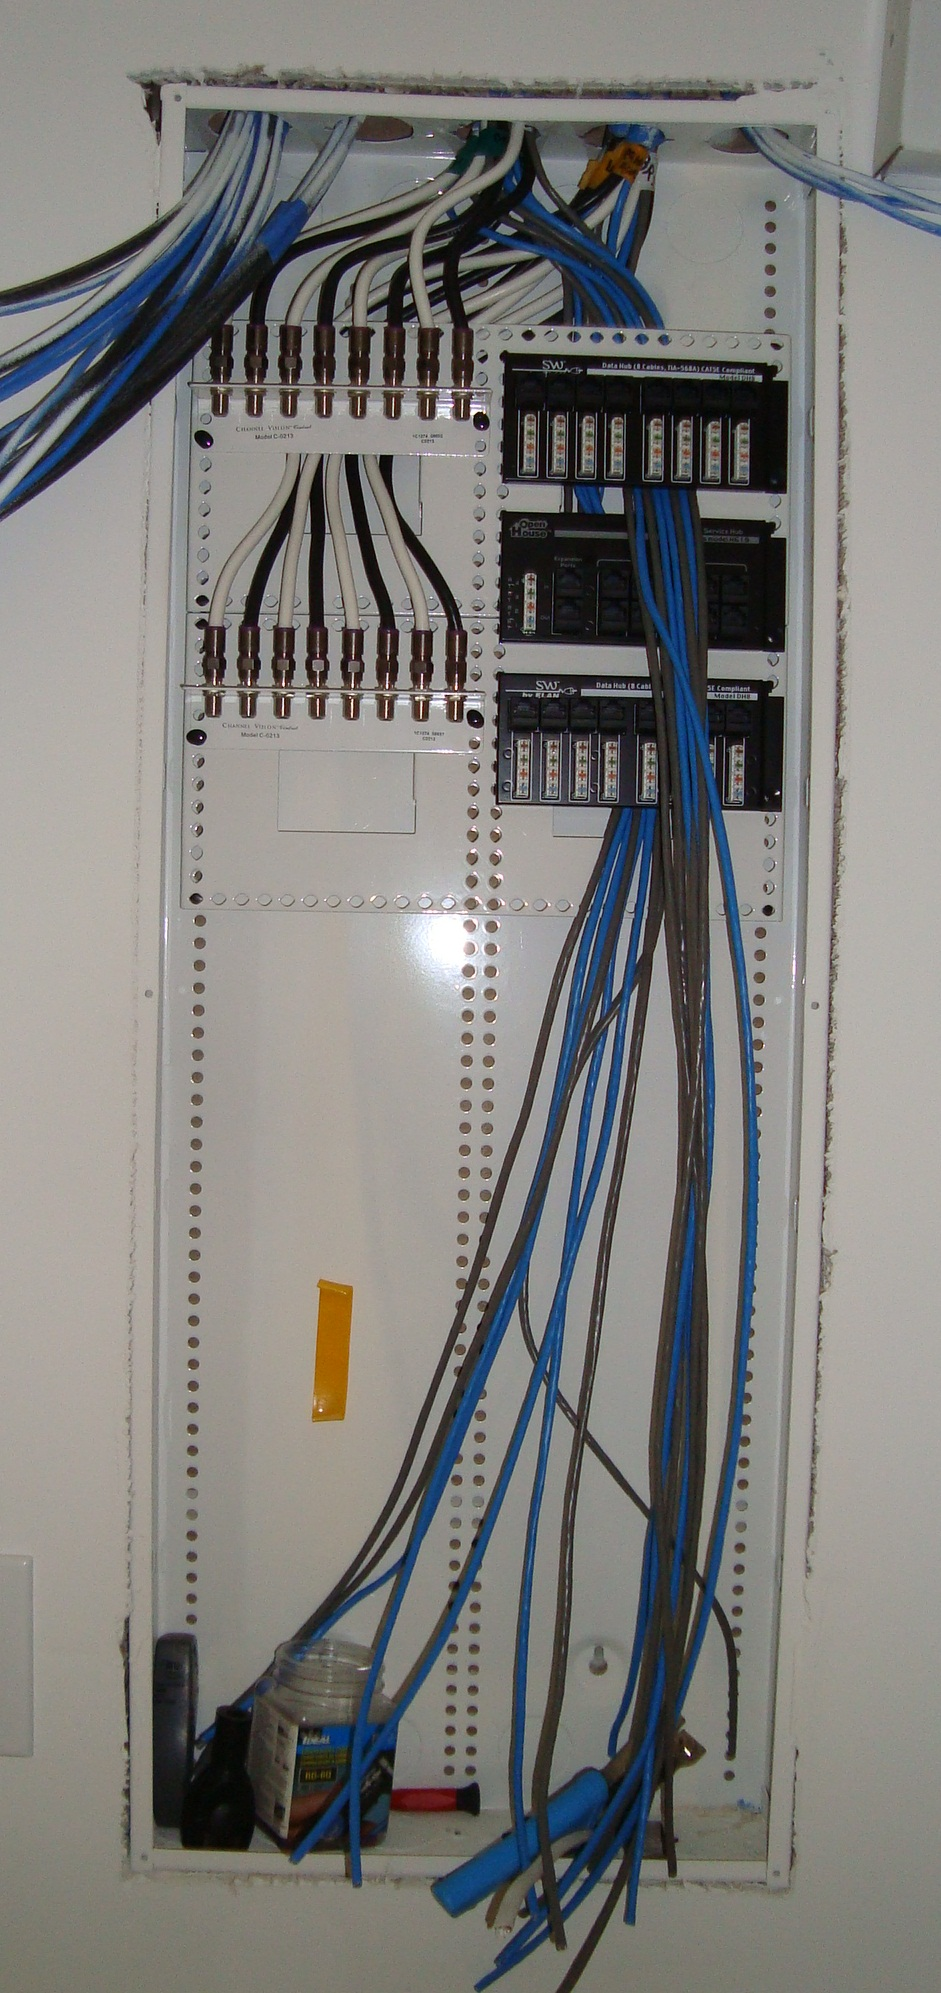 8 Zone Structured Wire Panel In Process Of Being Terminated Mw Low Voltage House Wiring 50 Done